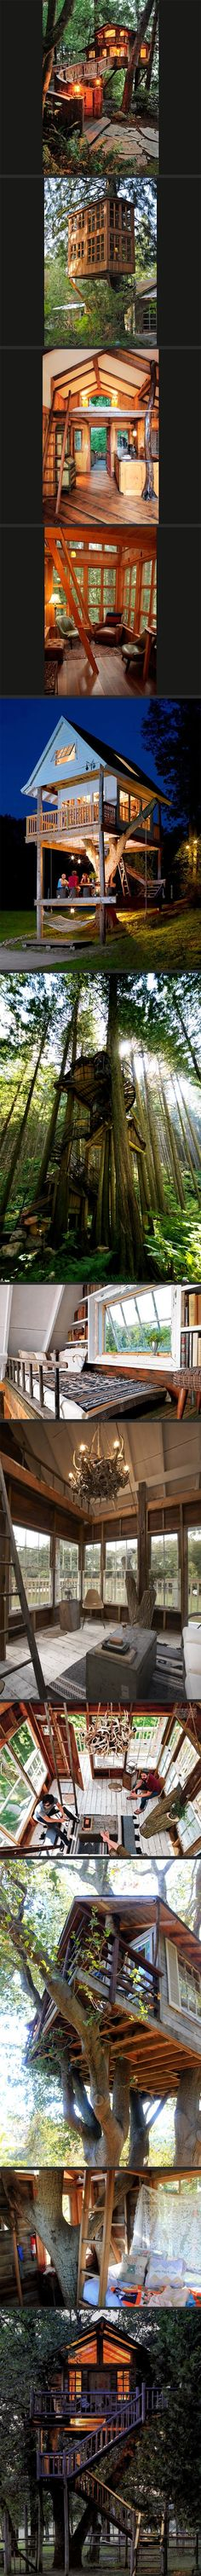 Tree house hotel rooms.